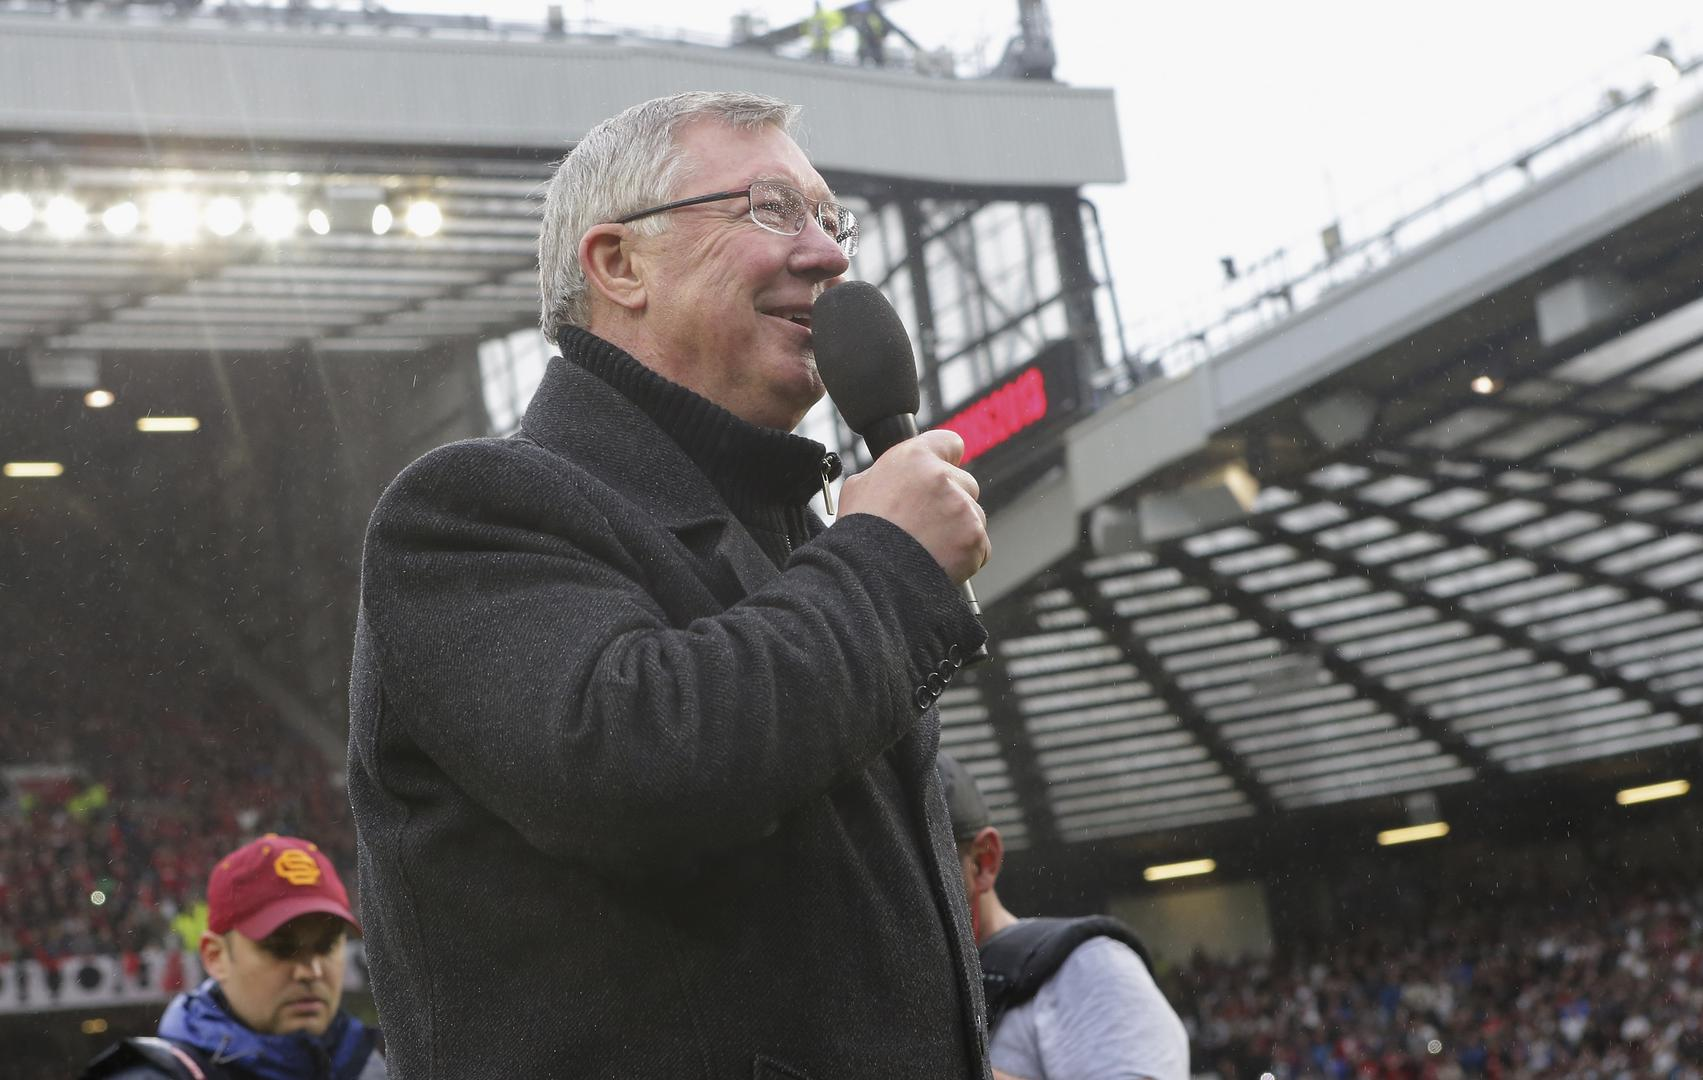 Sir Alex Ferguson make@s a speech at Old Trafford after his final home match as Manchester United manager in May 2013